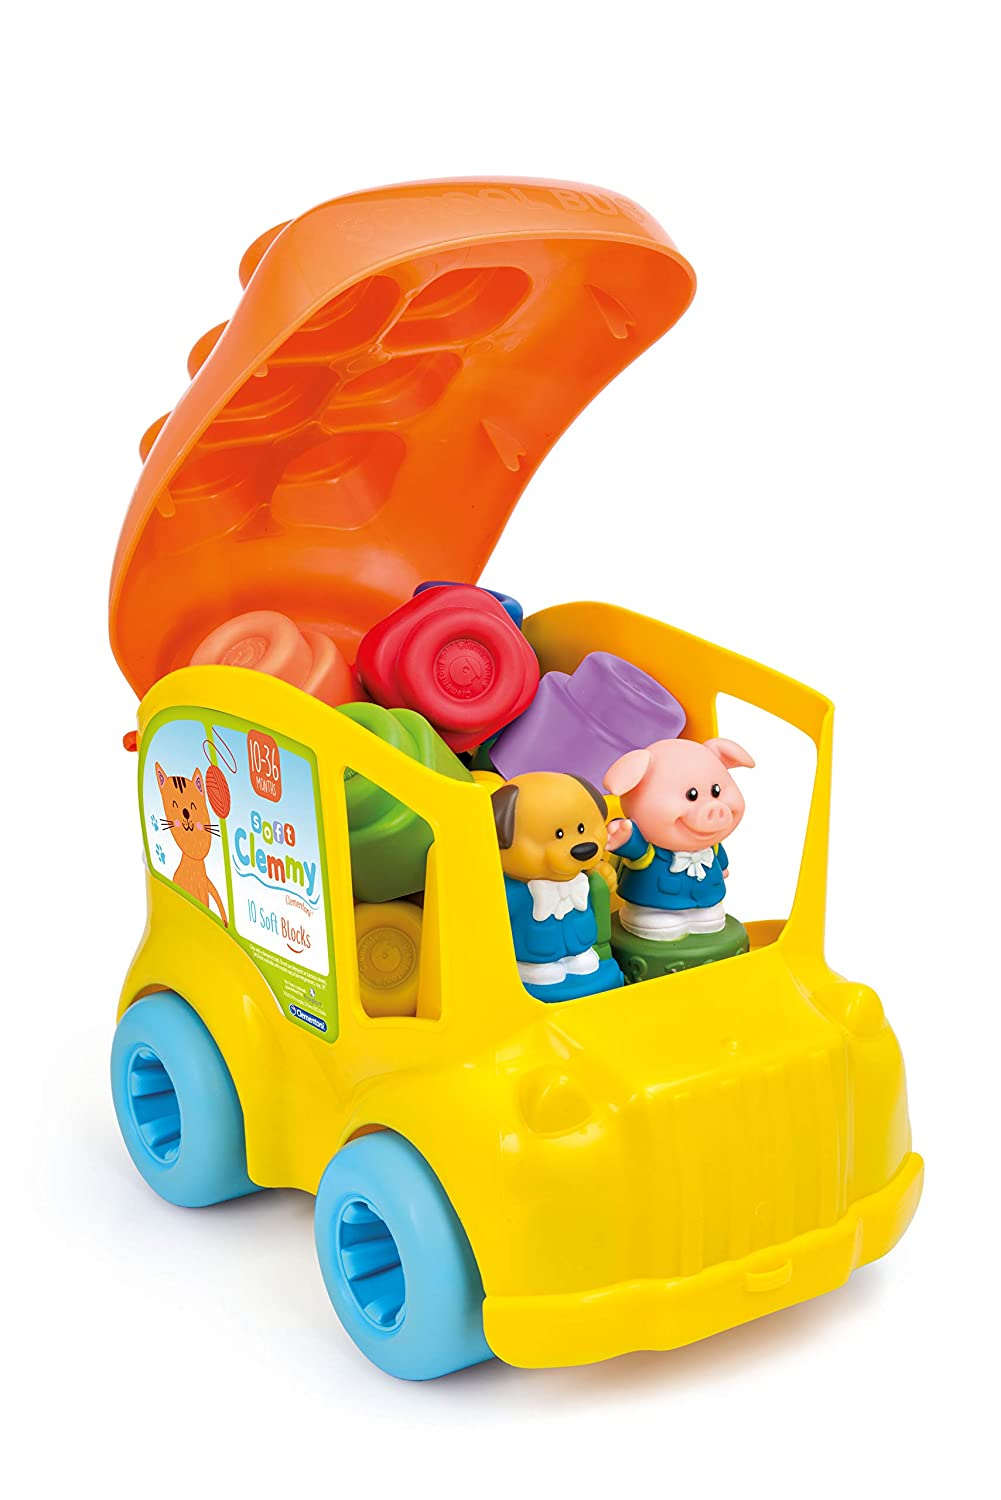 Clementoni Clemmy School Bus with 10 Soft Blocks Creative Toy Company 14783